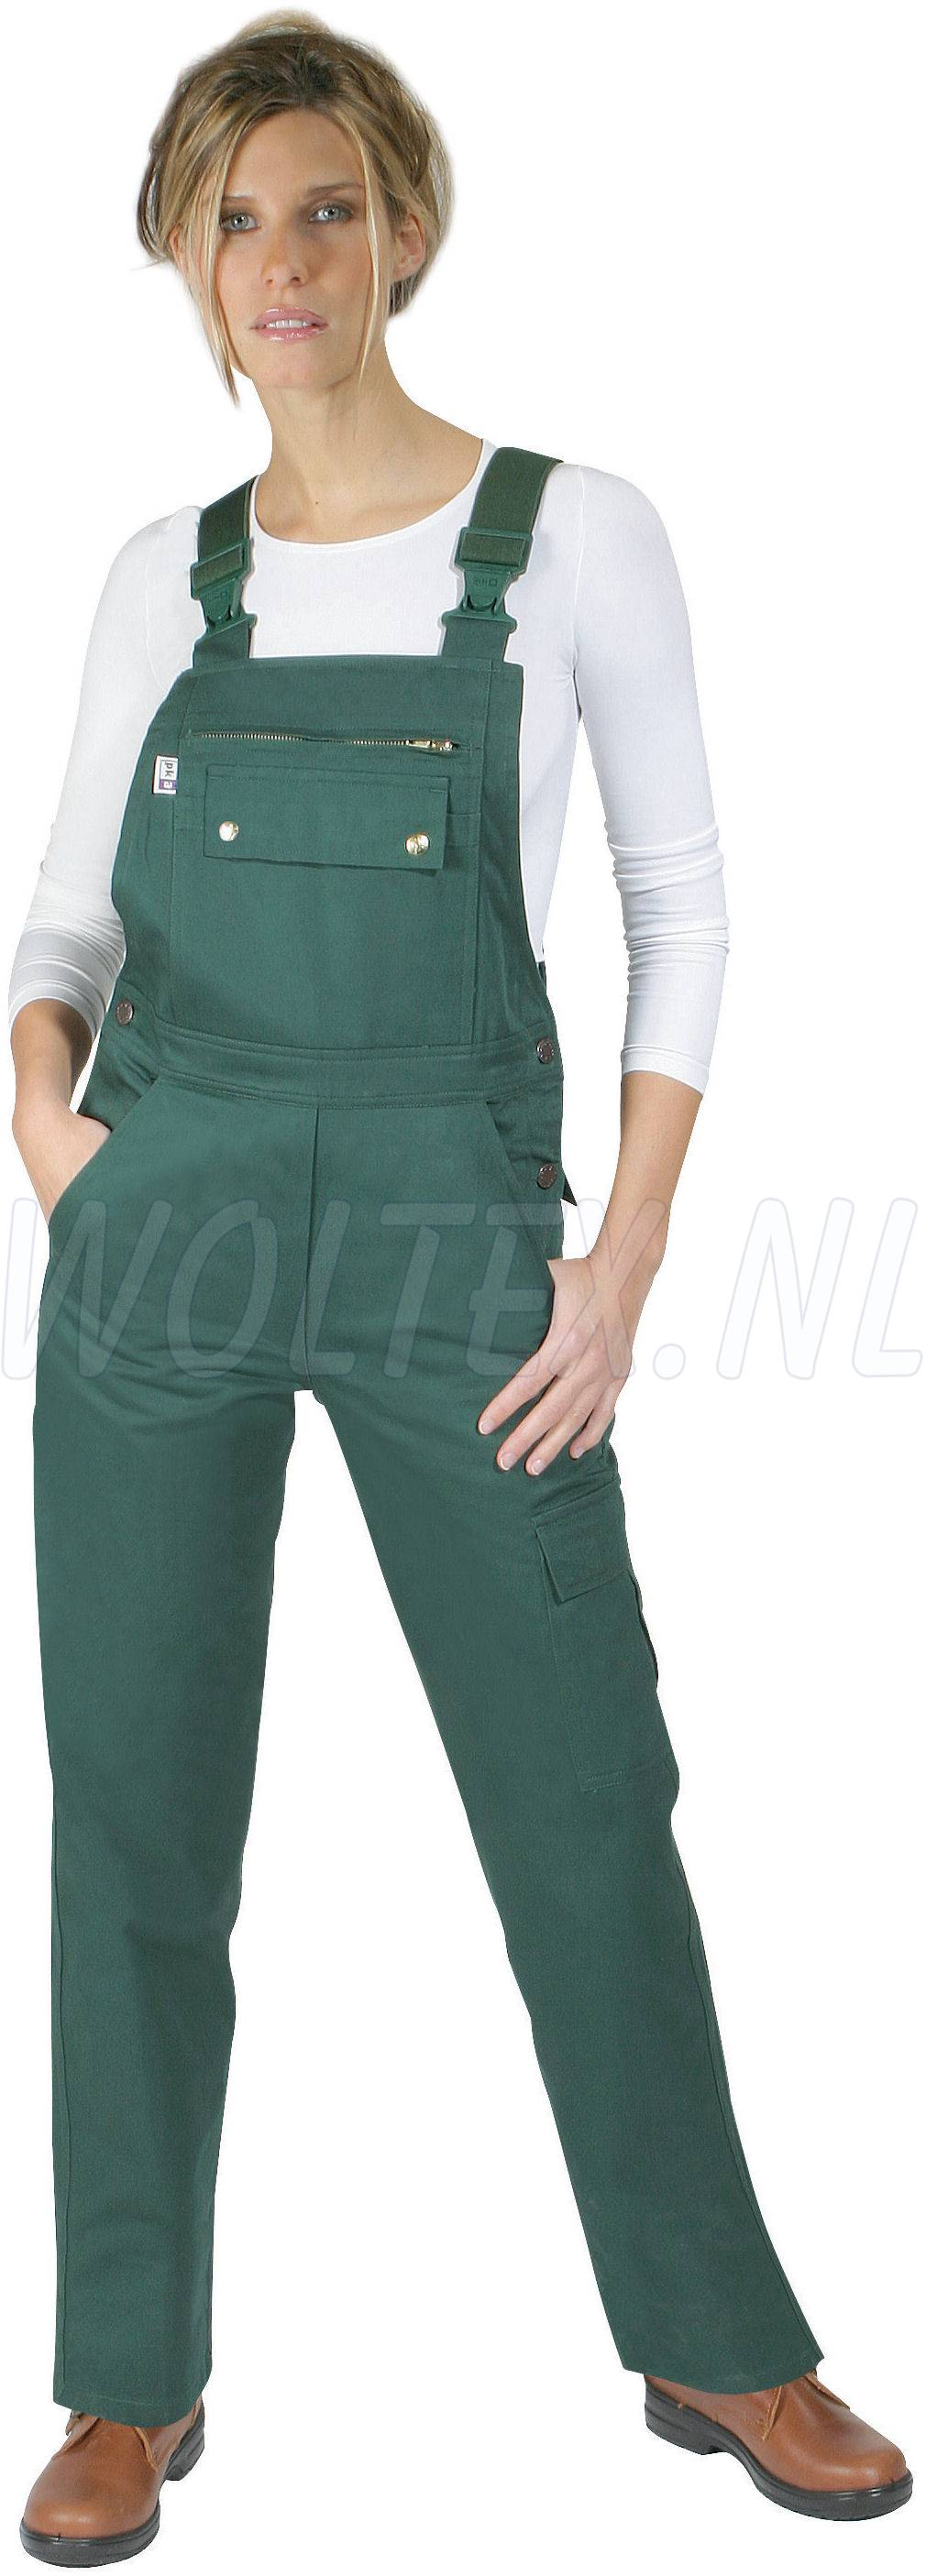 PKA Am. Overalls Star groen(GN) 34